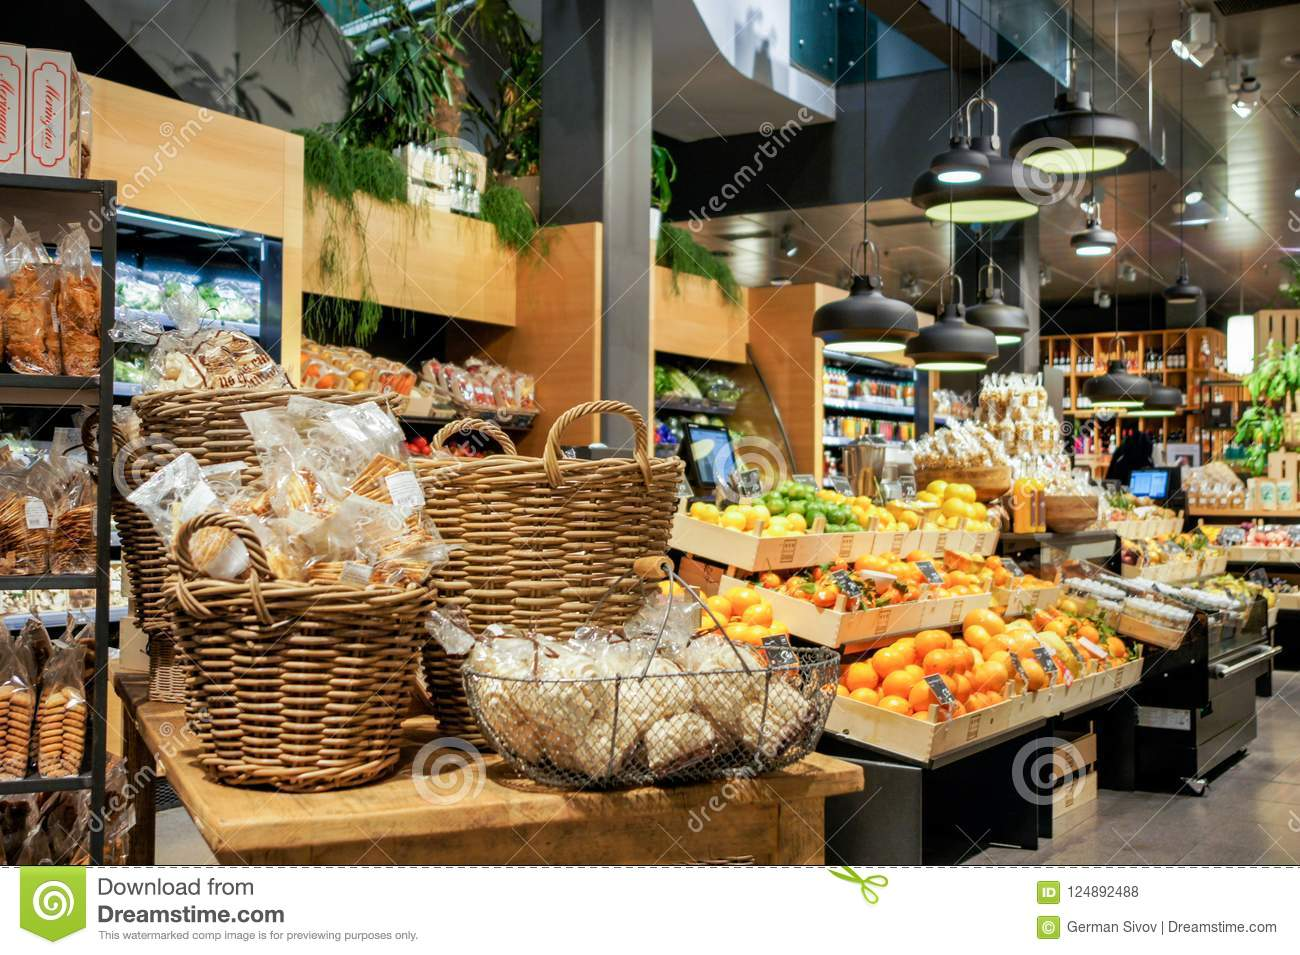 Fruit in the store  stock photo  Image of person, distributor